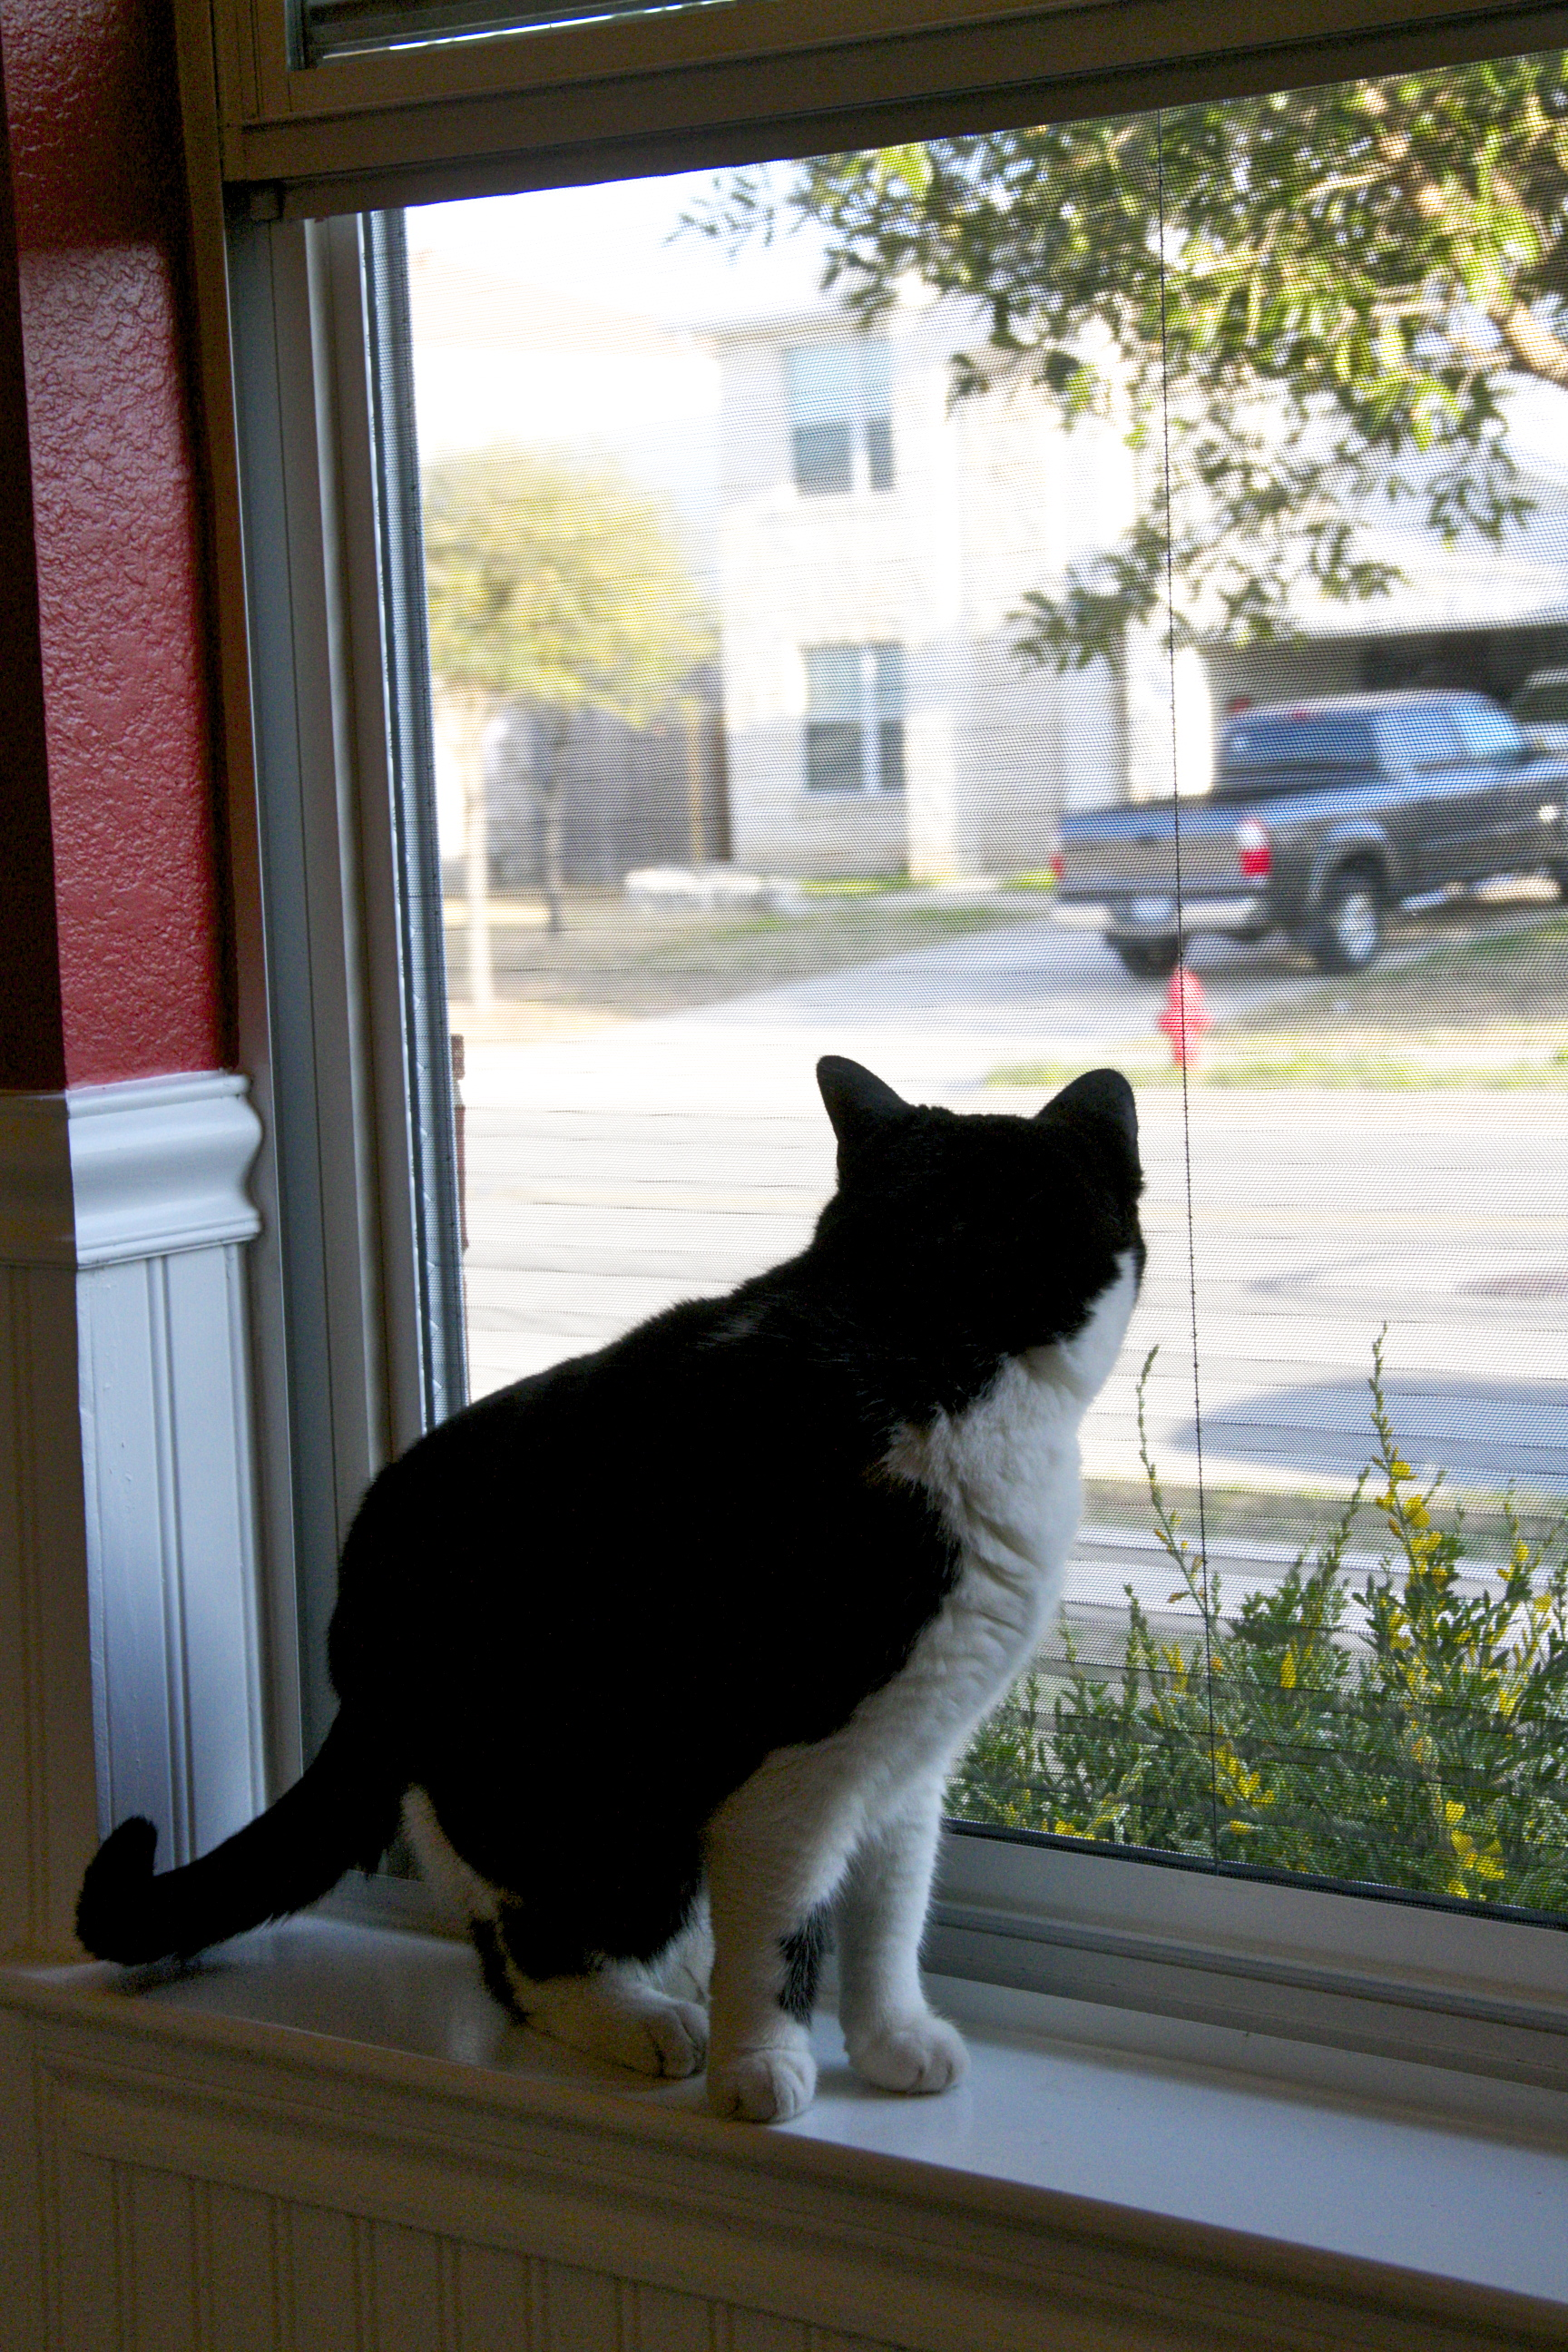 A Better Retractable Screen For Cats